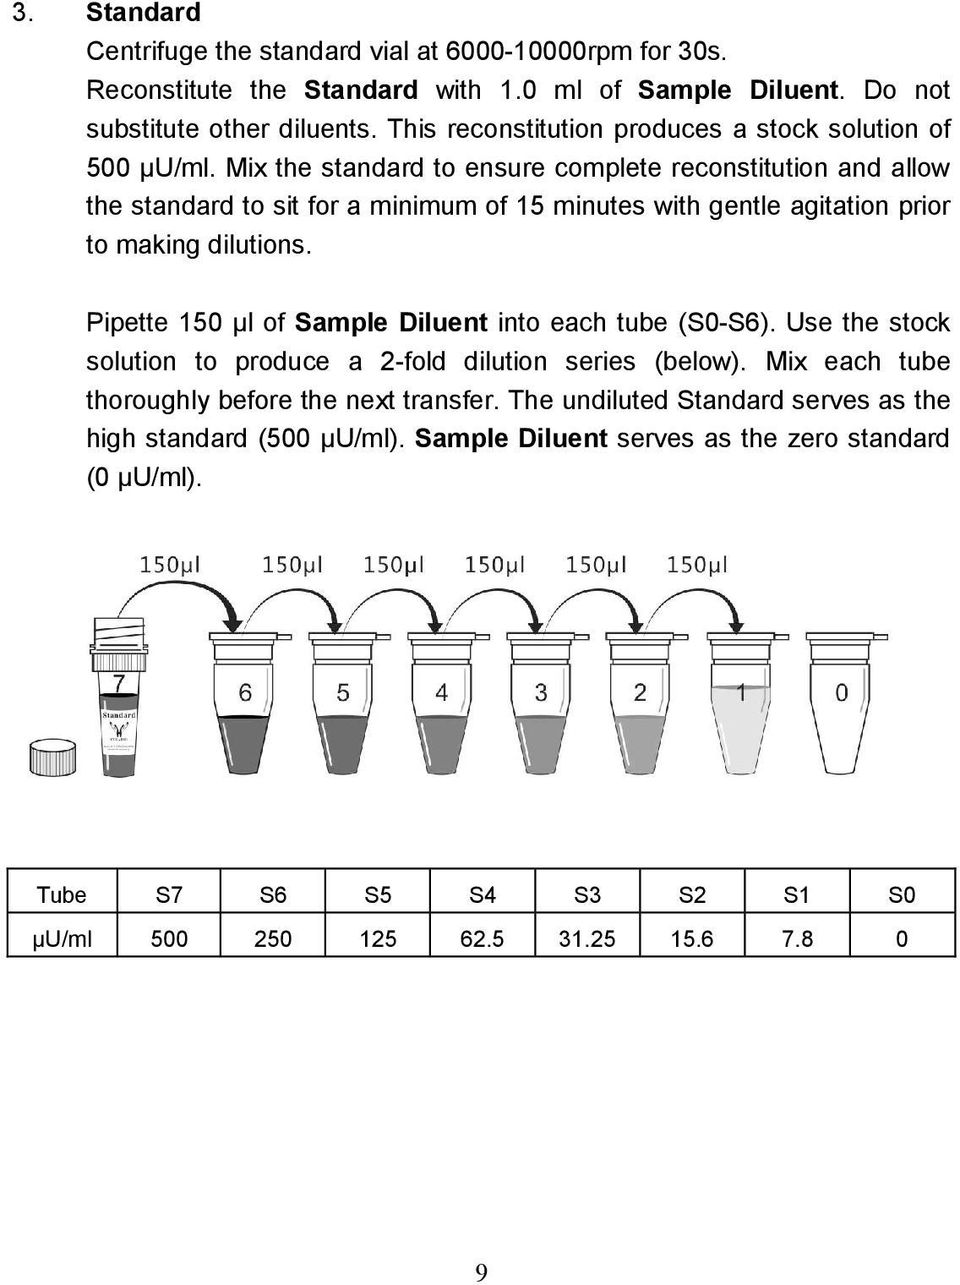 Mix the standard to ensure complete reconstitution and allow the standard to sit for a minimum of 15 minutes with gentle agitation prior to making dilutions.